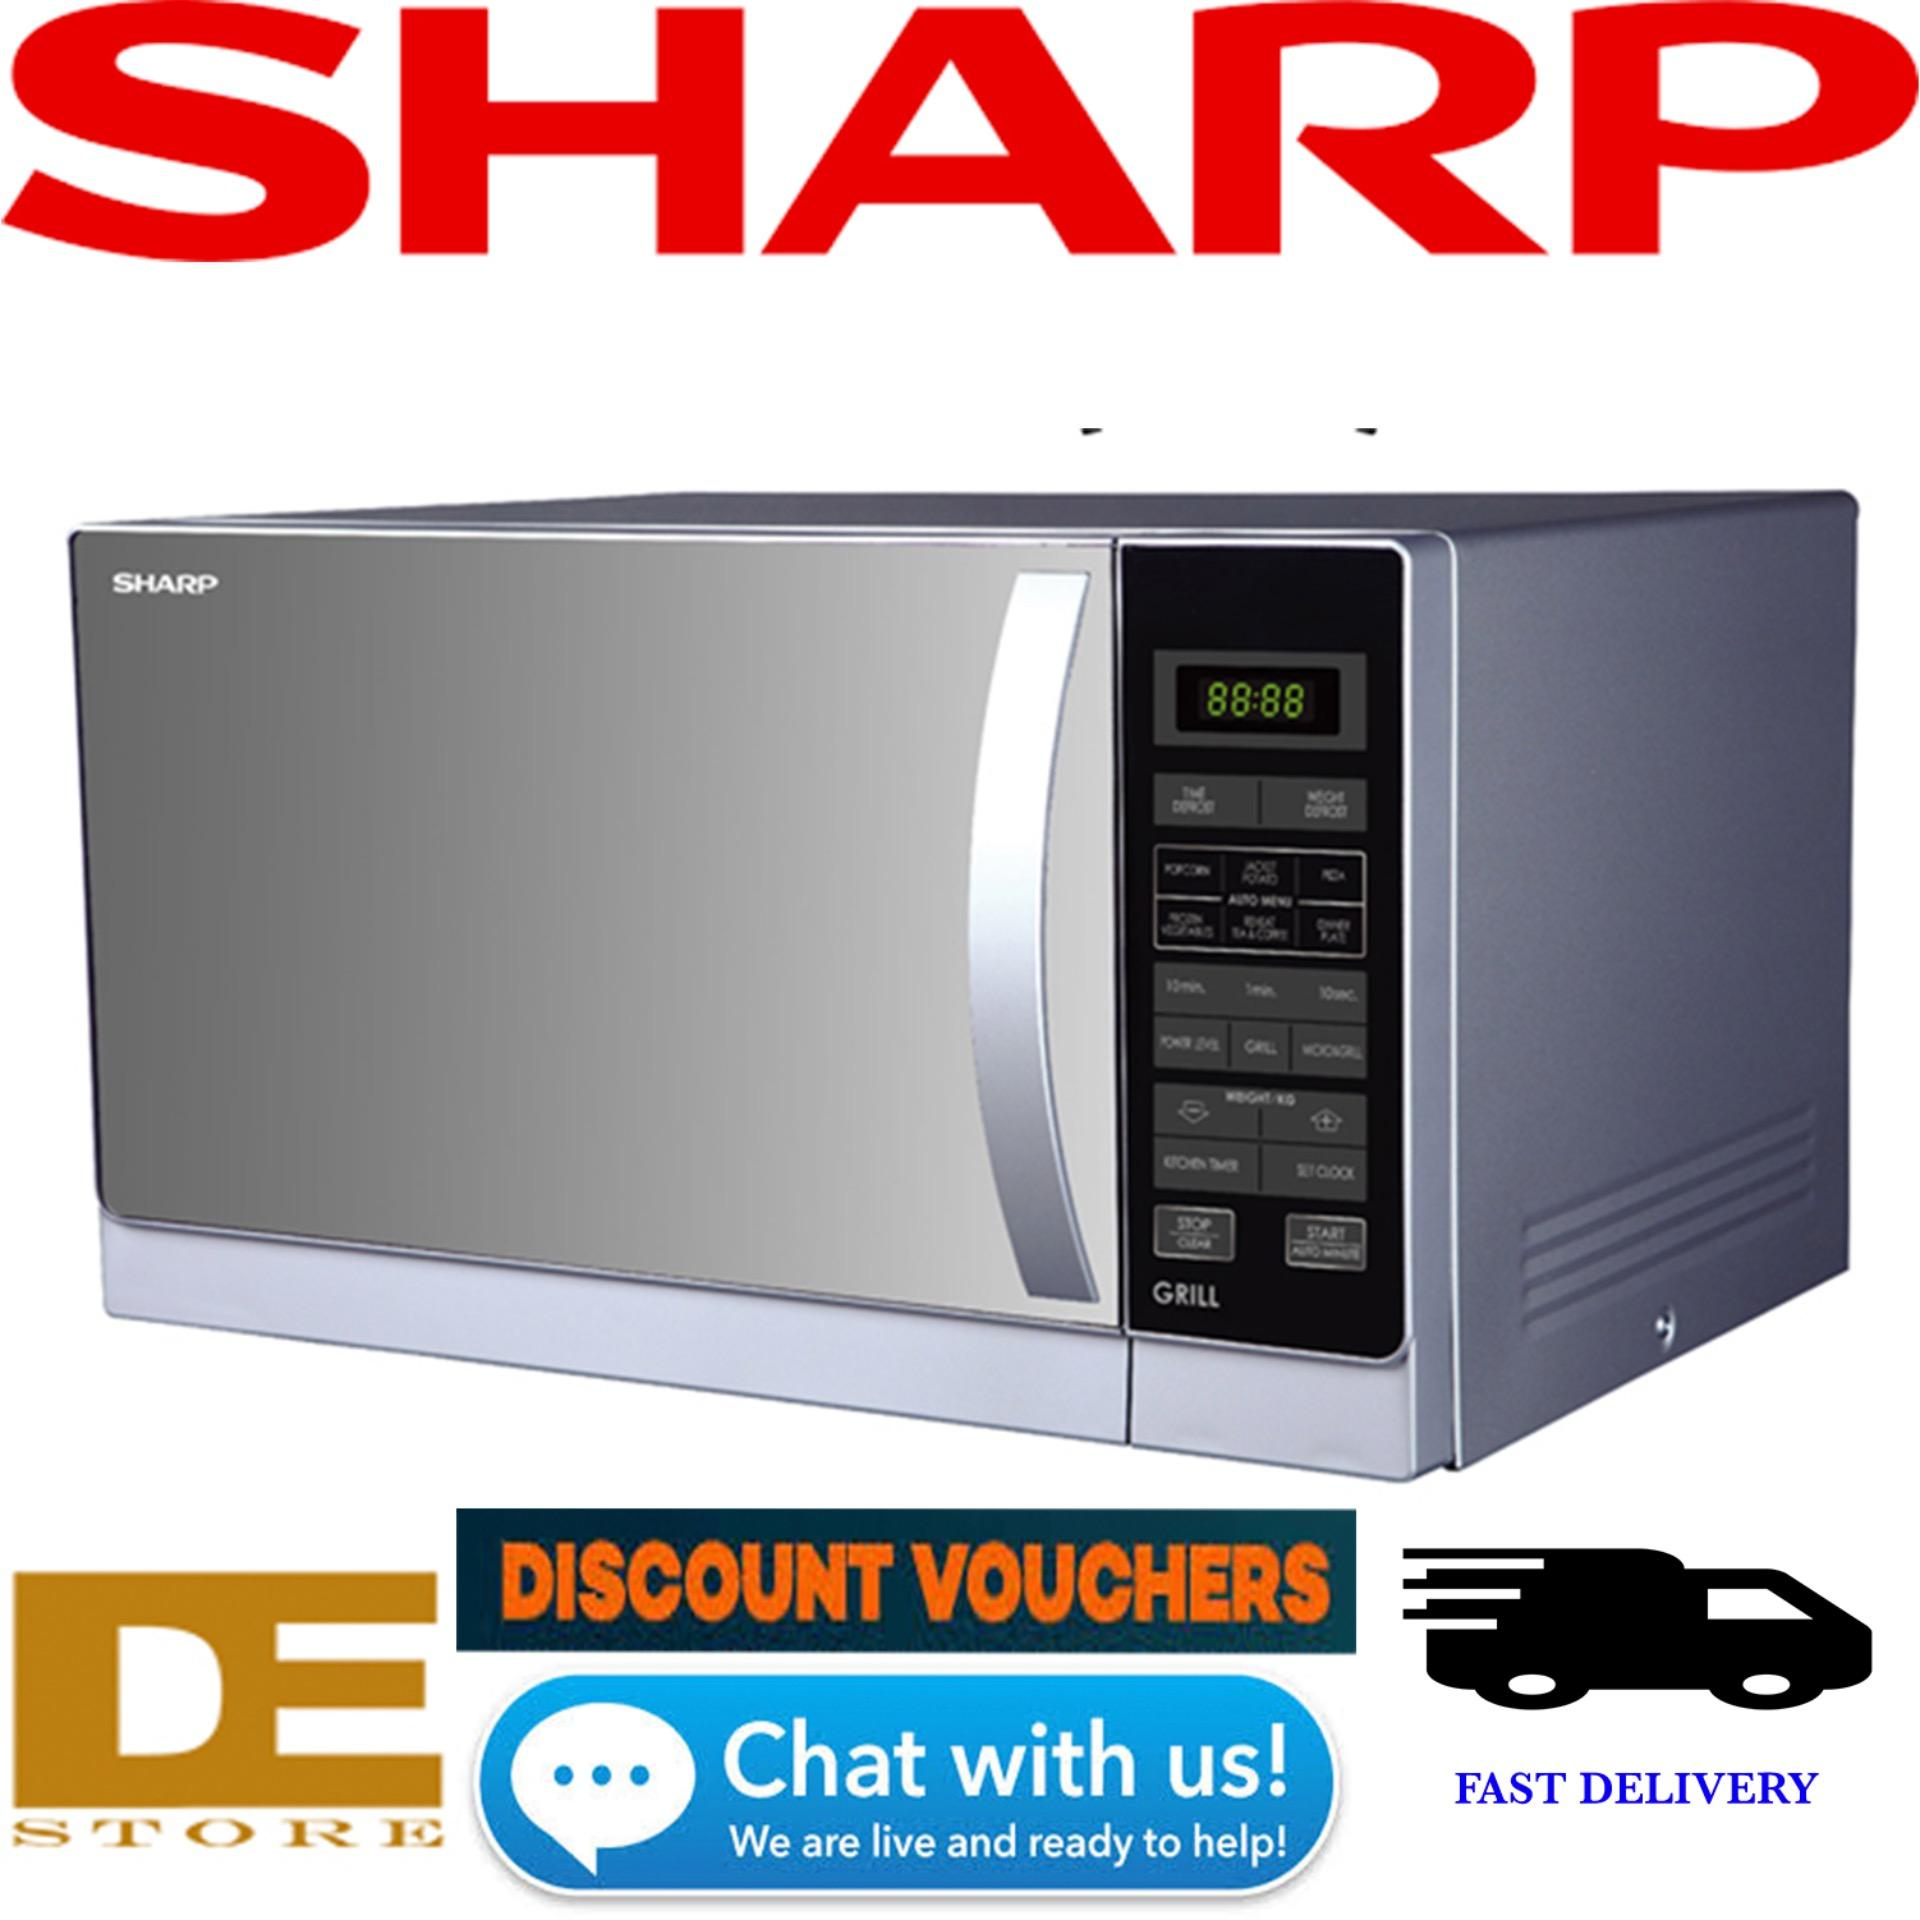 Sharp R 72a1 Compact Grill Microwave 25l